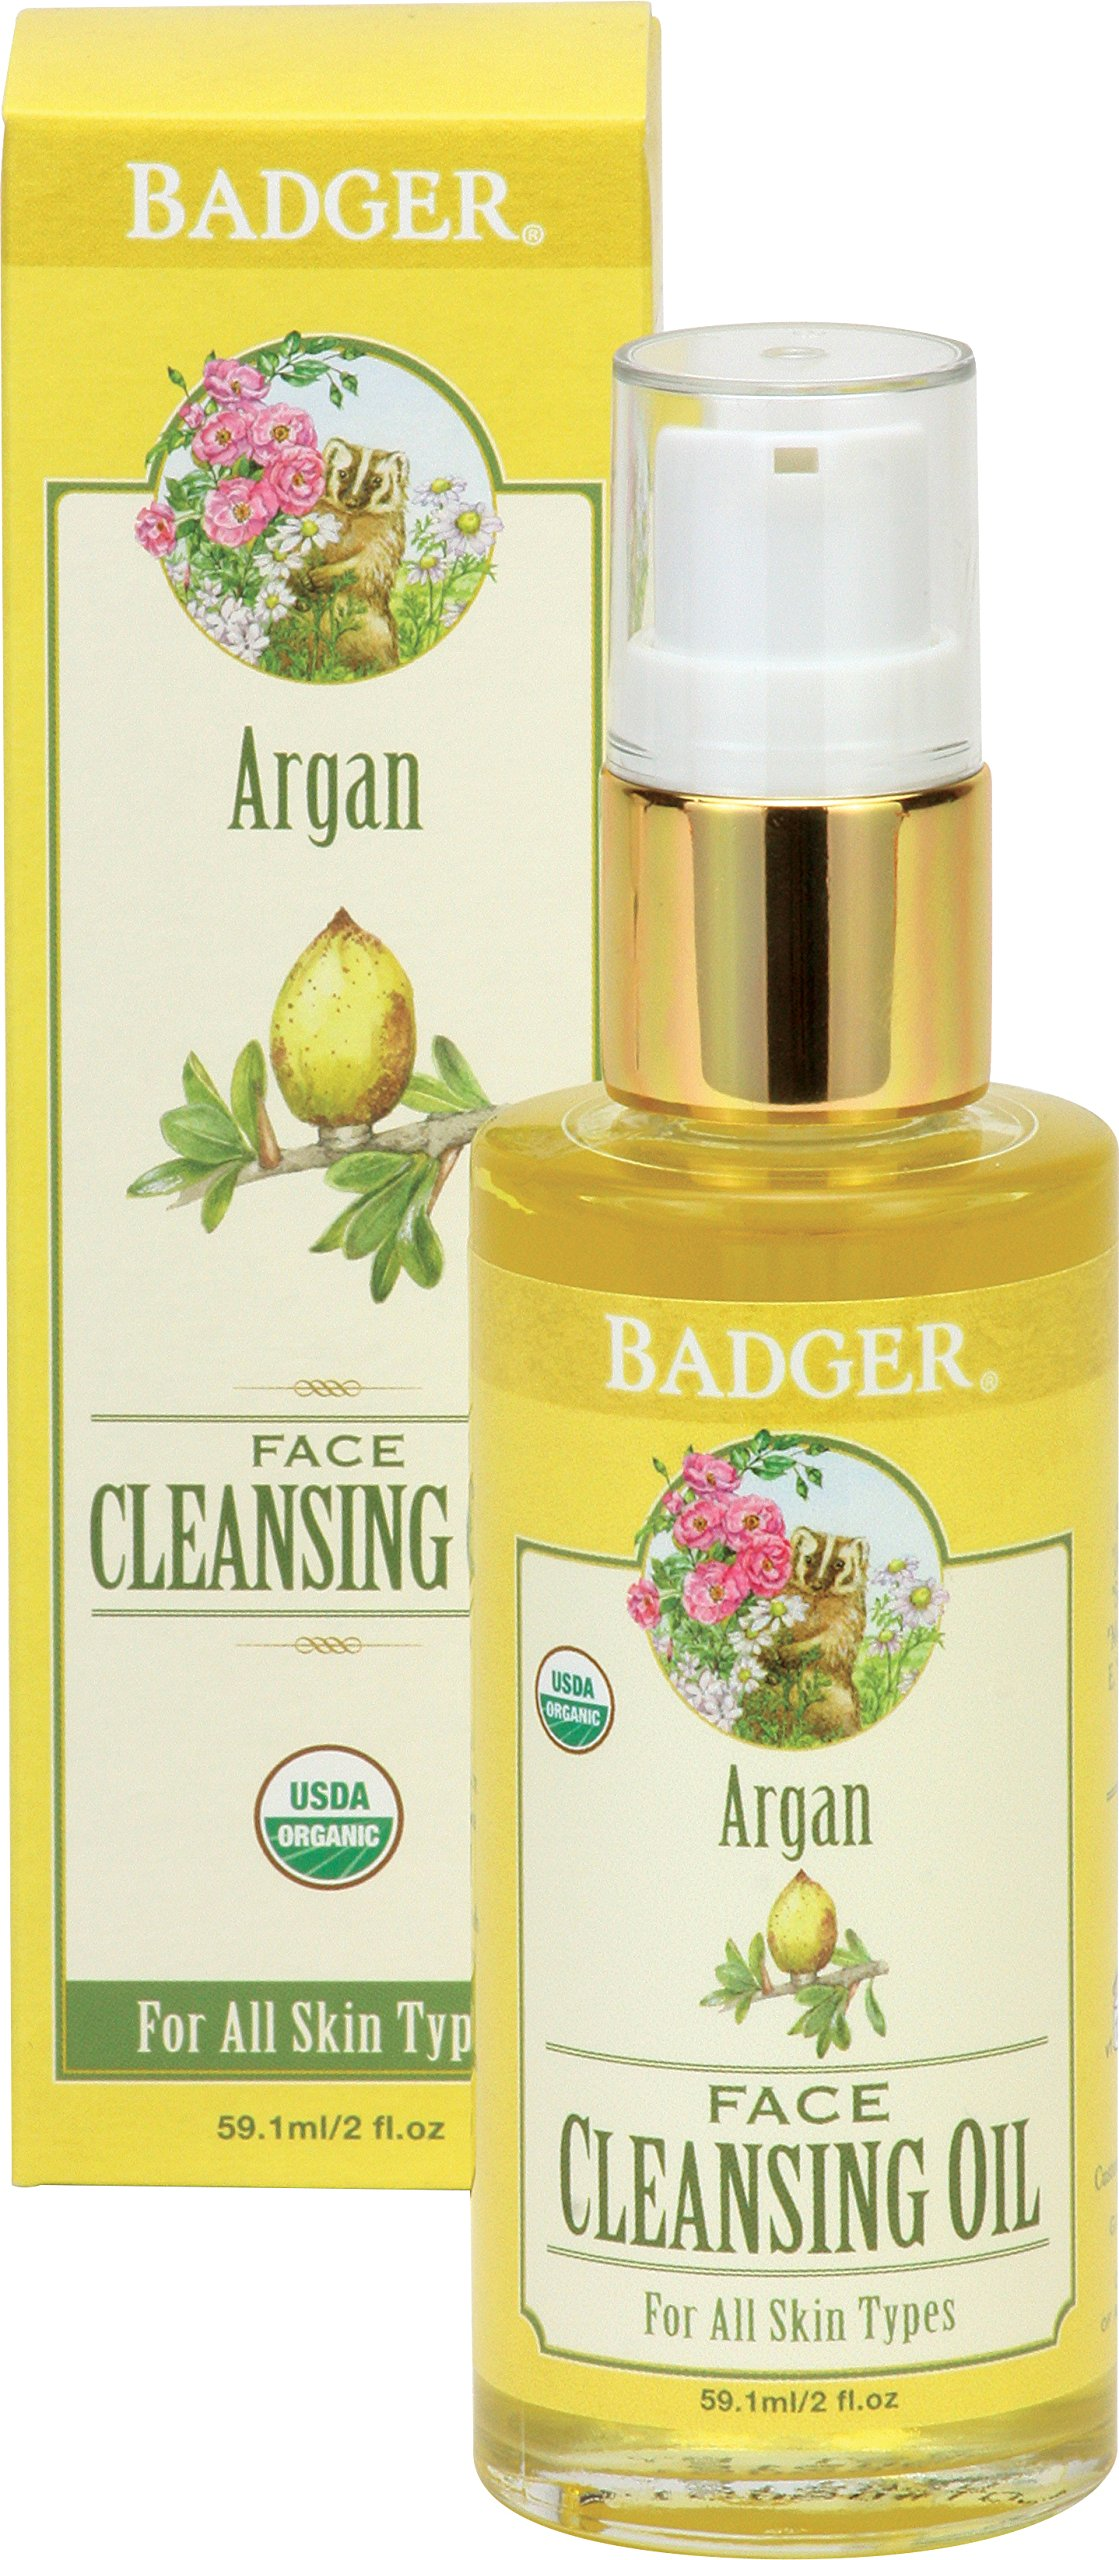 Badger Company, Argan Face Cleansing Oil, For All Skin Types, 2 fl oz (pack of 6) Burts Bees Island Lip Balm with Passion Fruit, 0.15 OZ